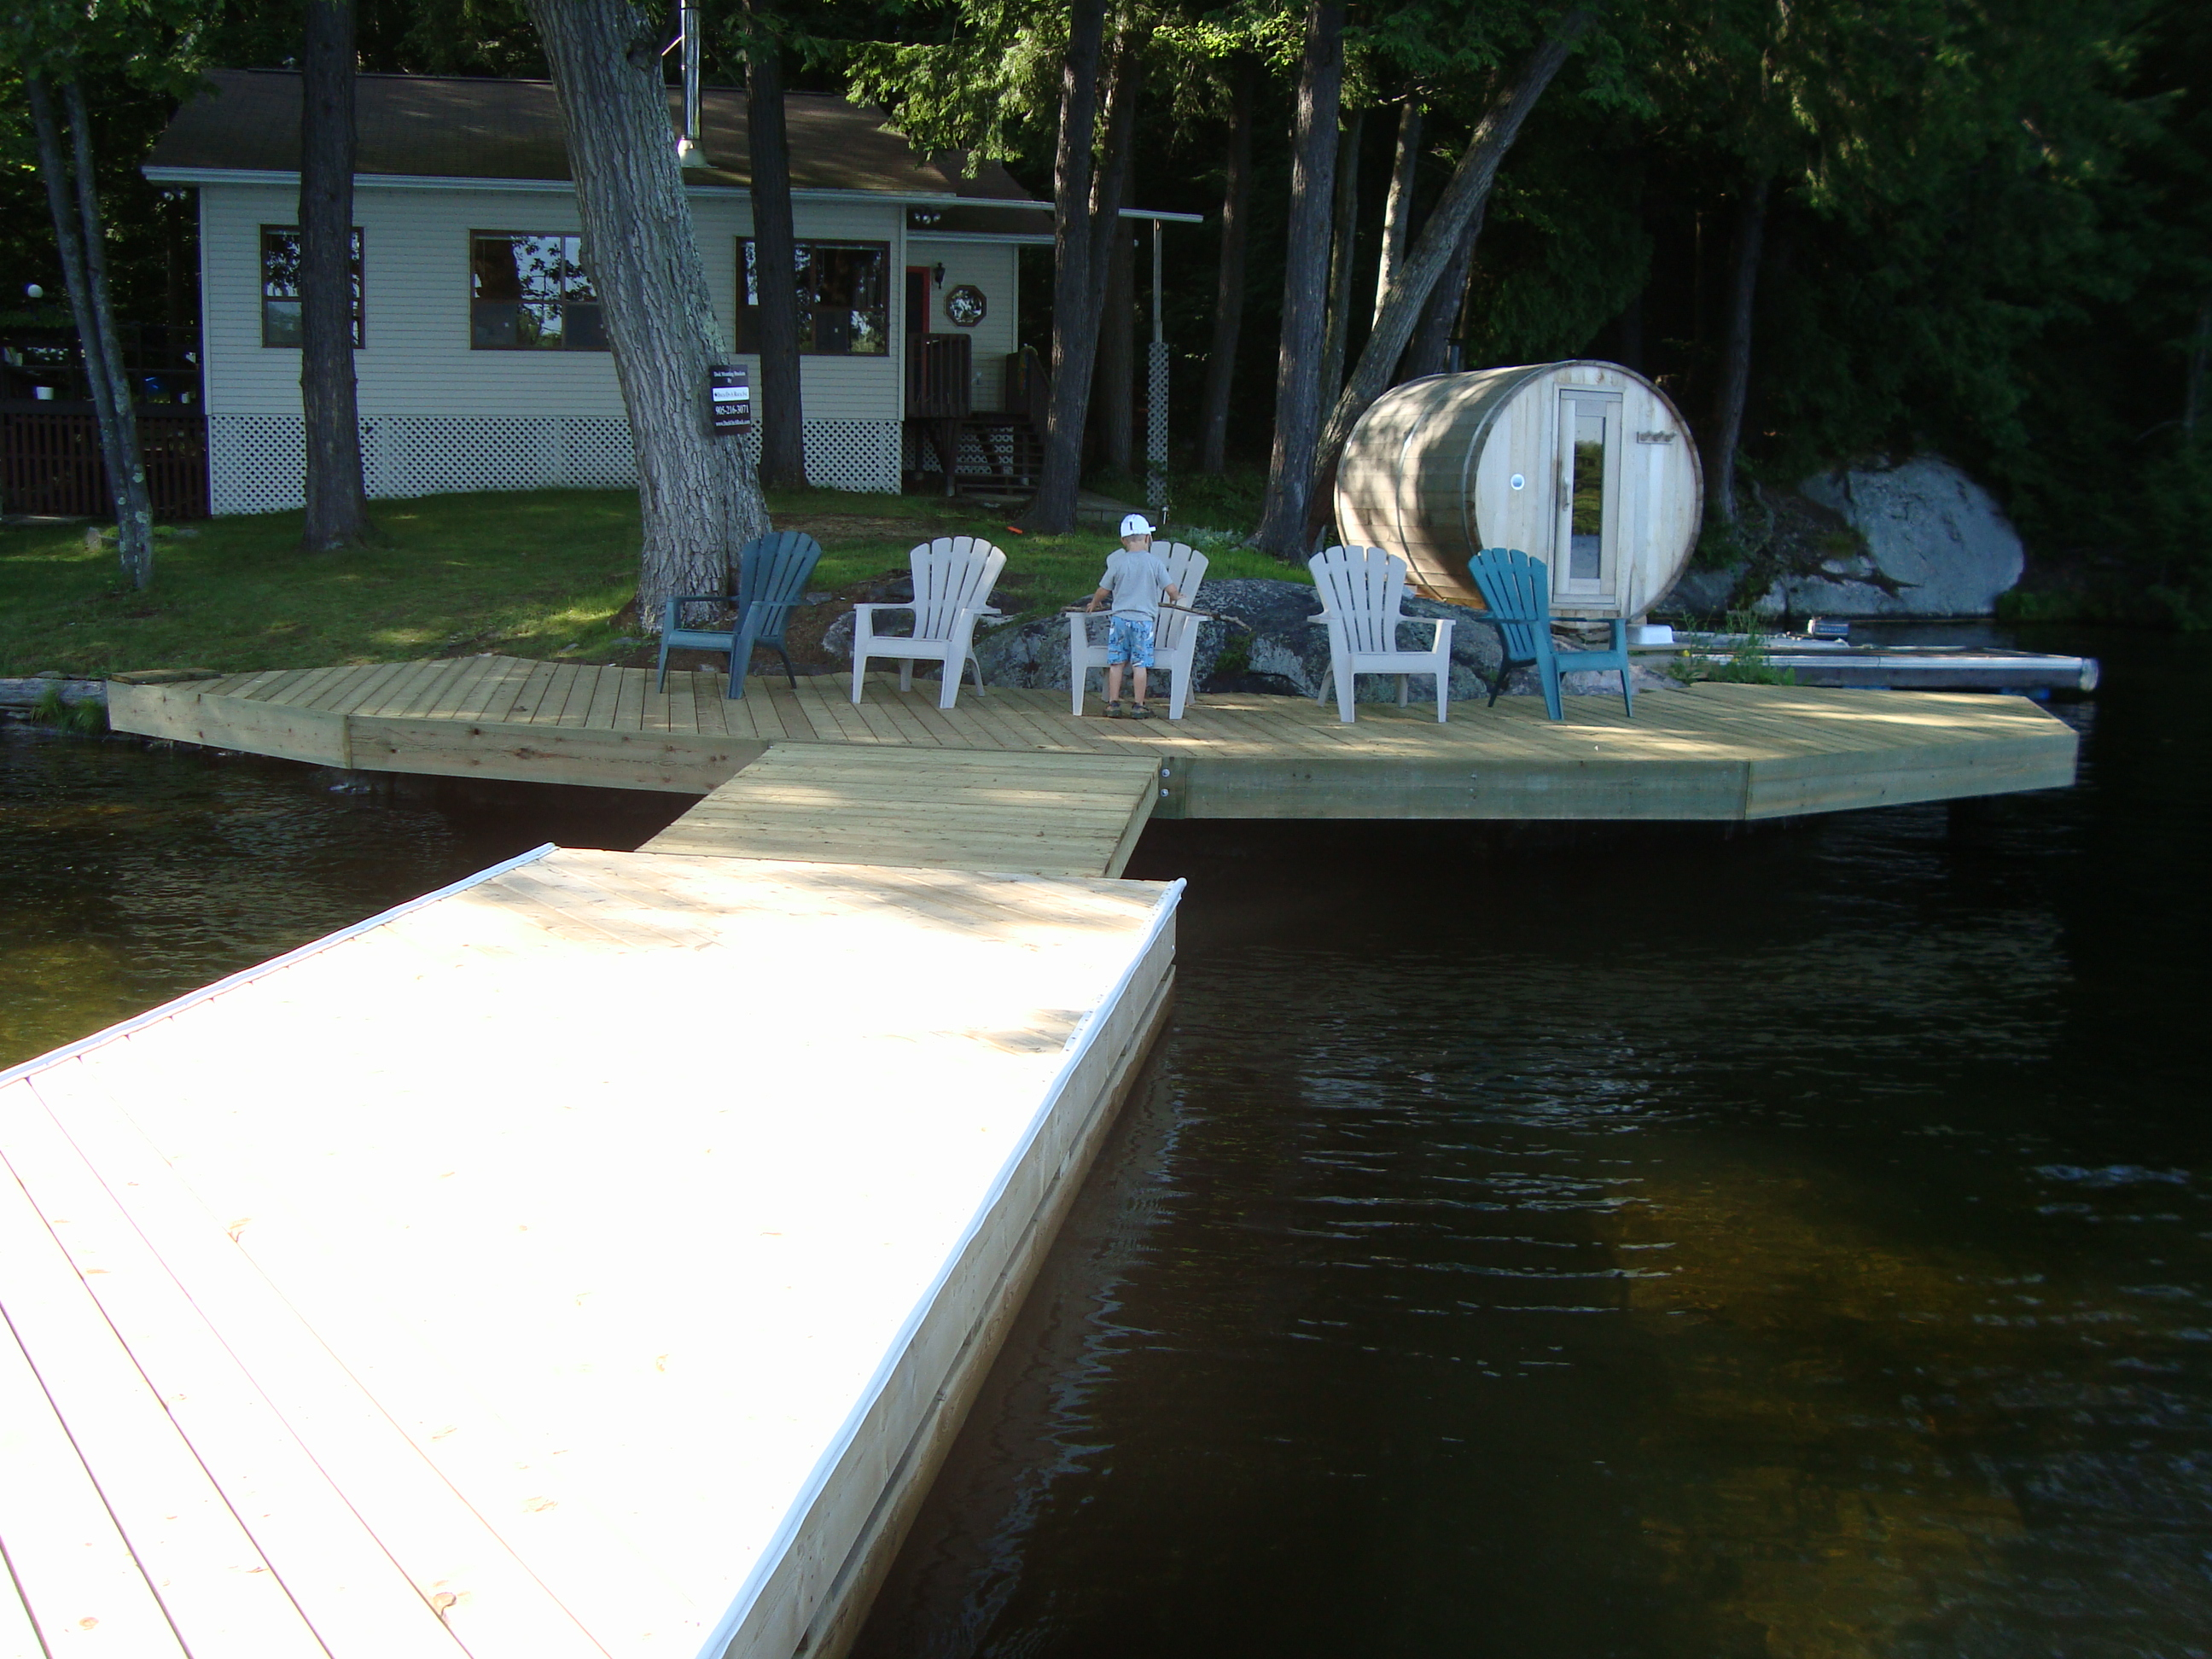 Dock On A Rock, from the Floater